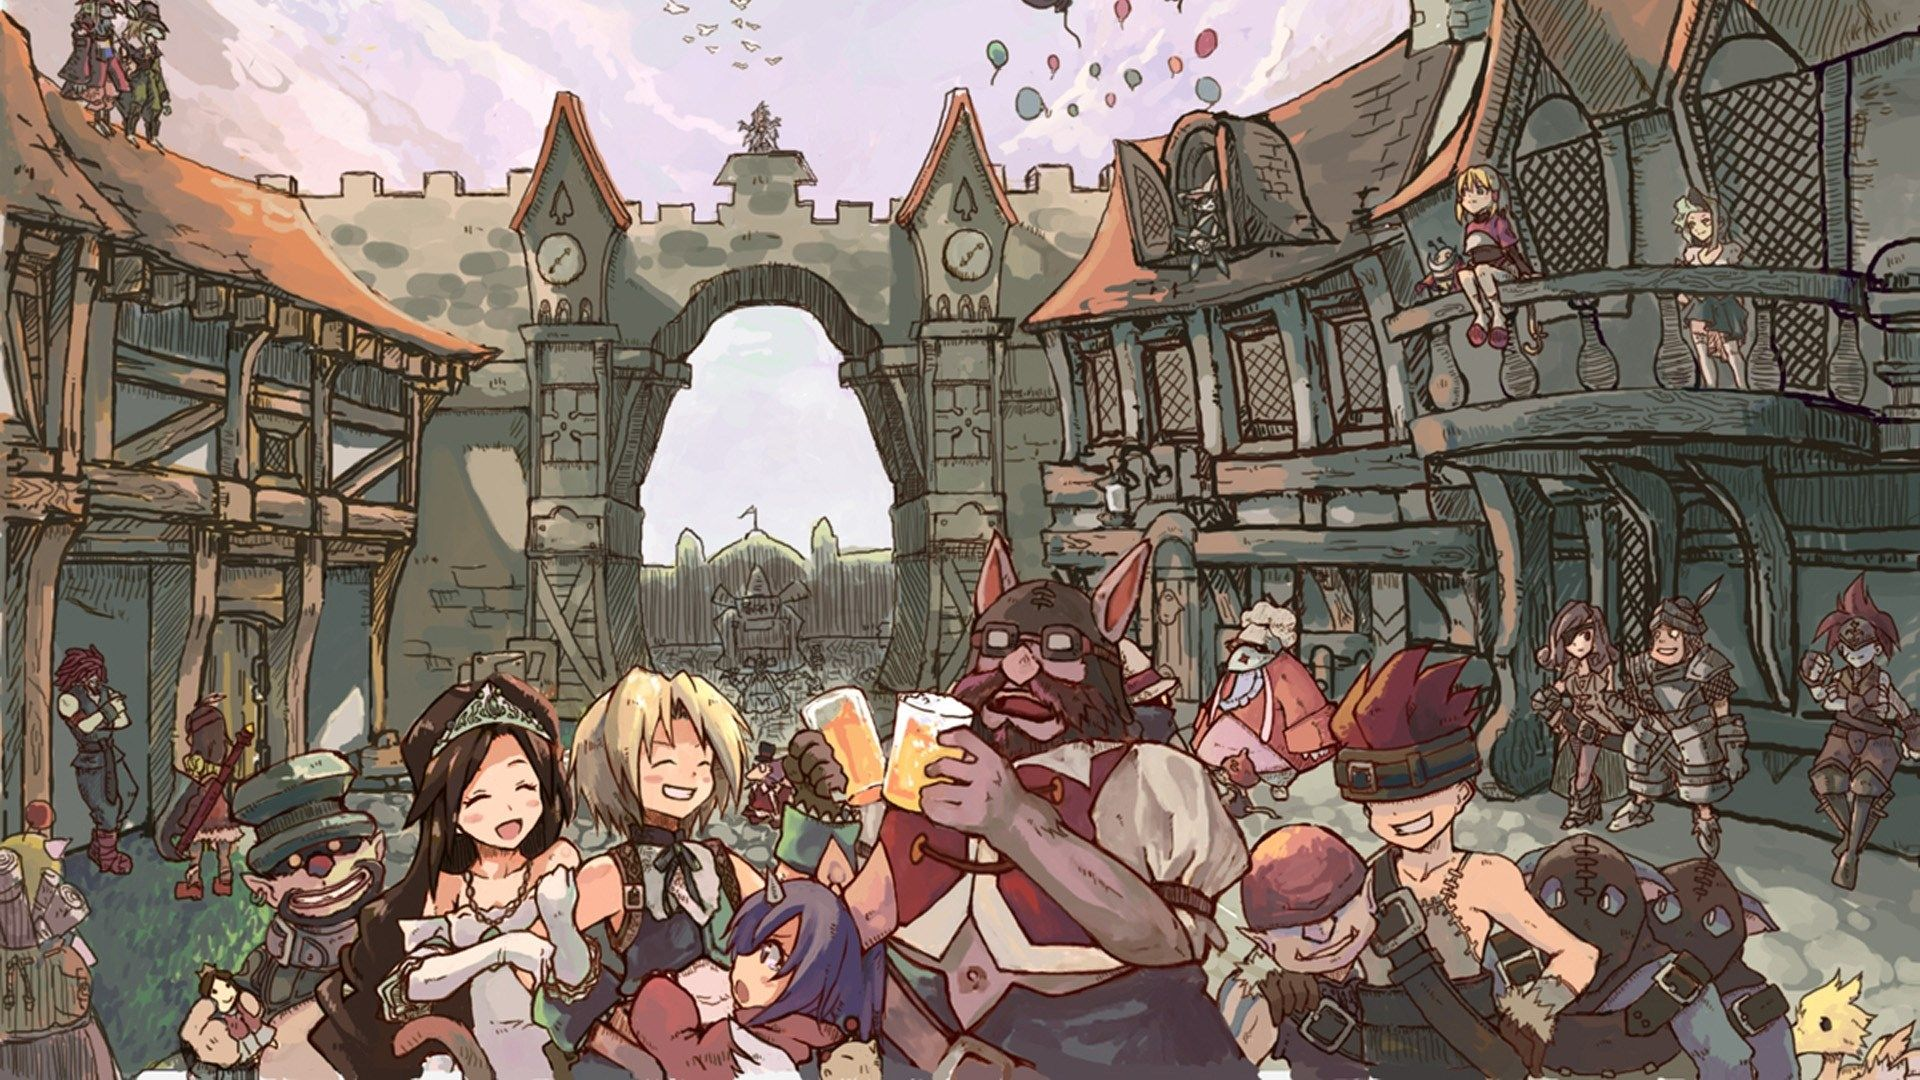 1920x1080 Free Desktop Final Fantasy Ix Final Fantasy Ix Final Fantasy Artwork Final Fantasy